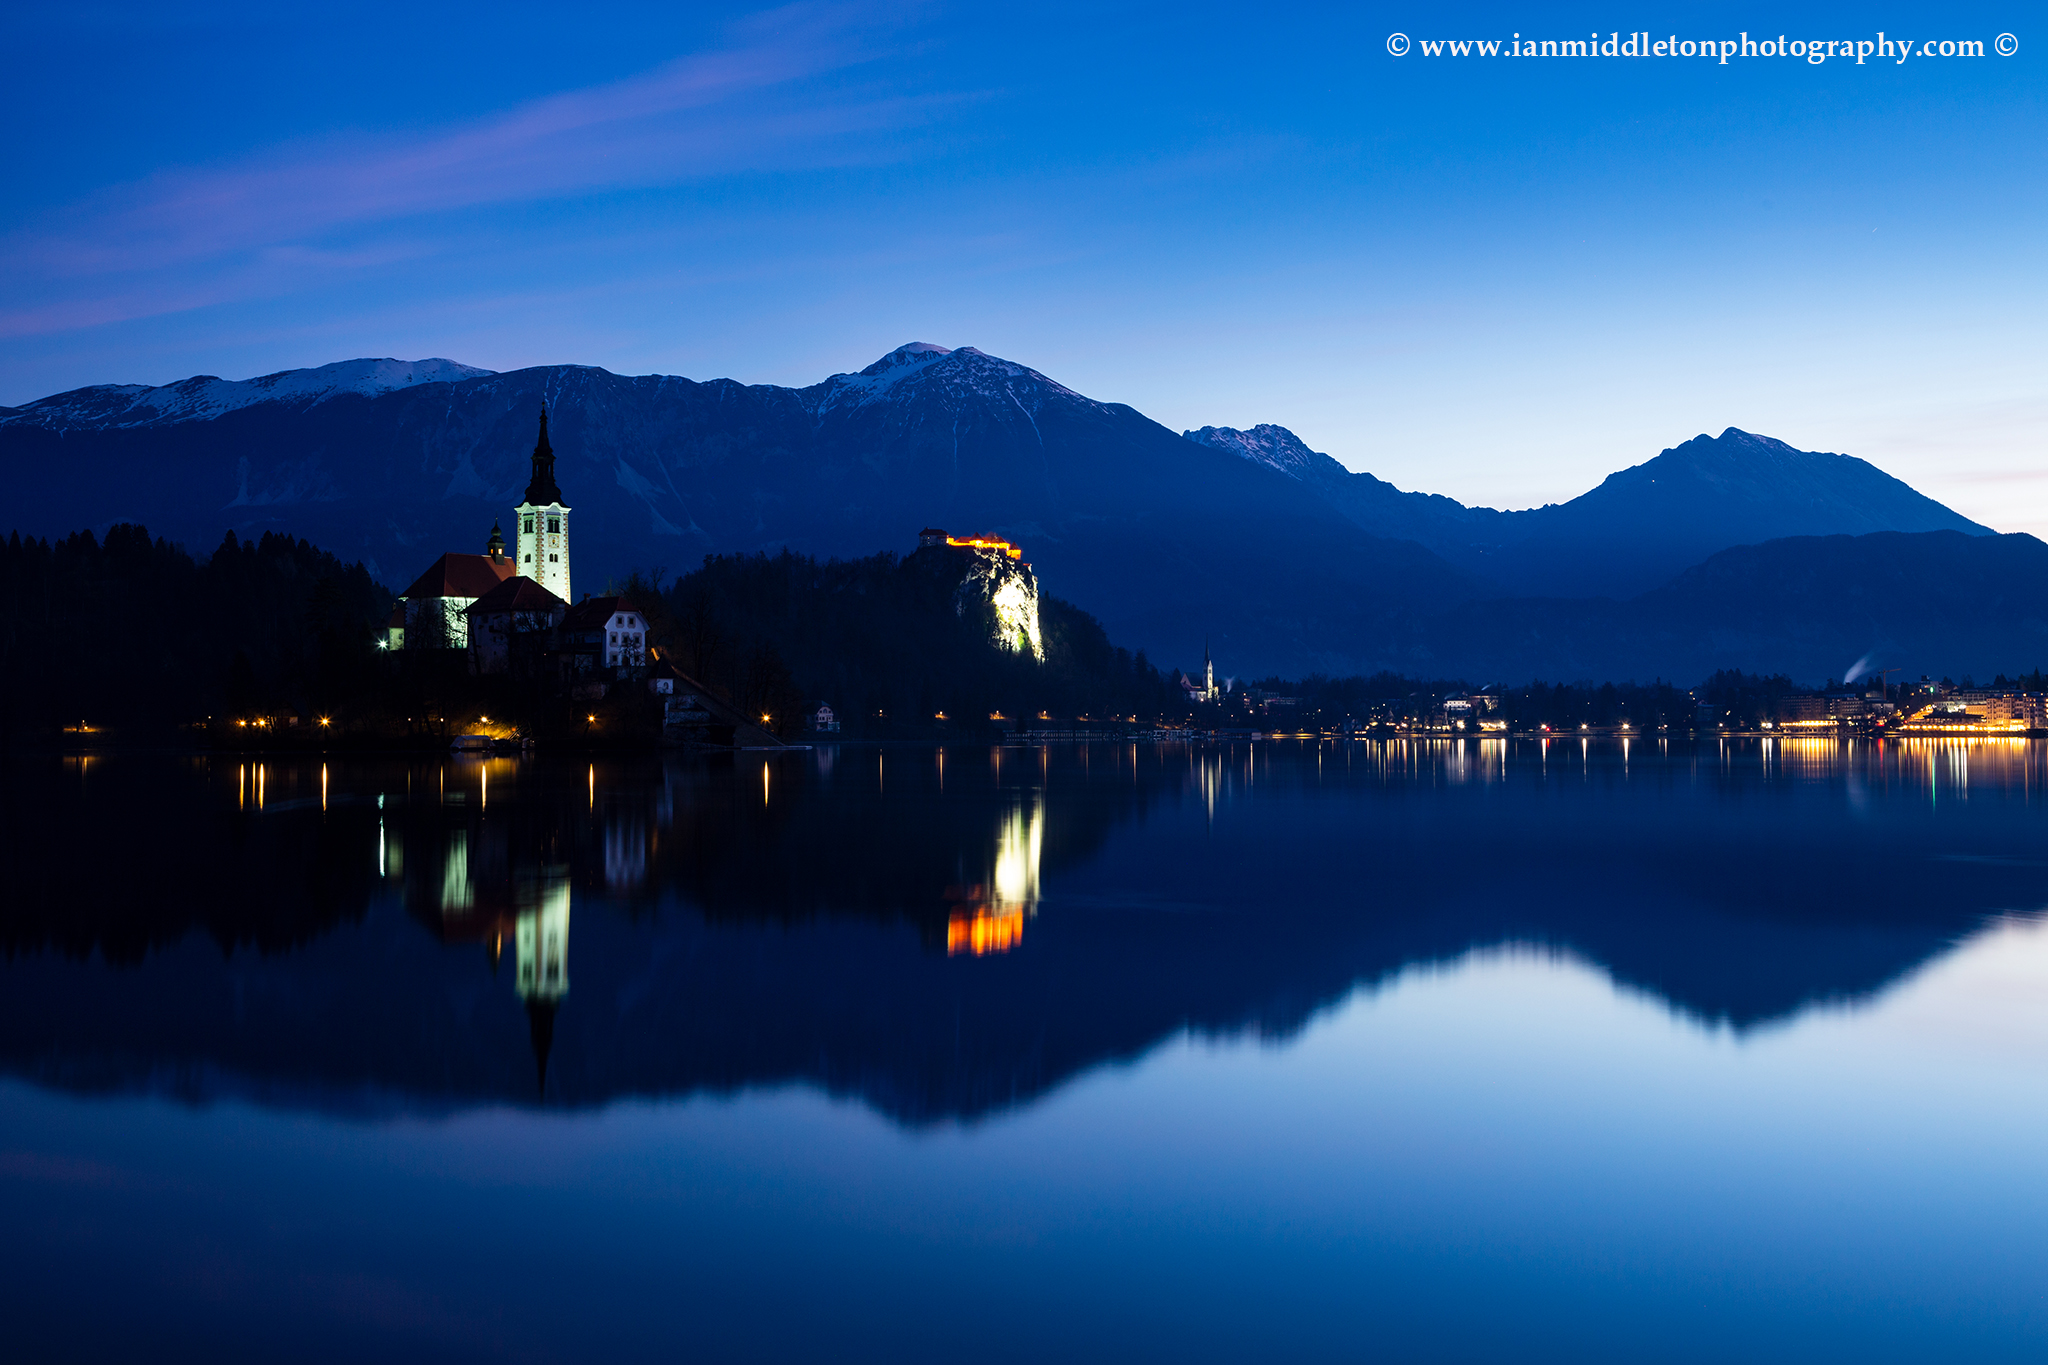 Dawn view across the beautiful Lake Bled, island church of the assumption of Mary, and hilltop castle, Slovenia.